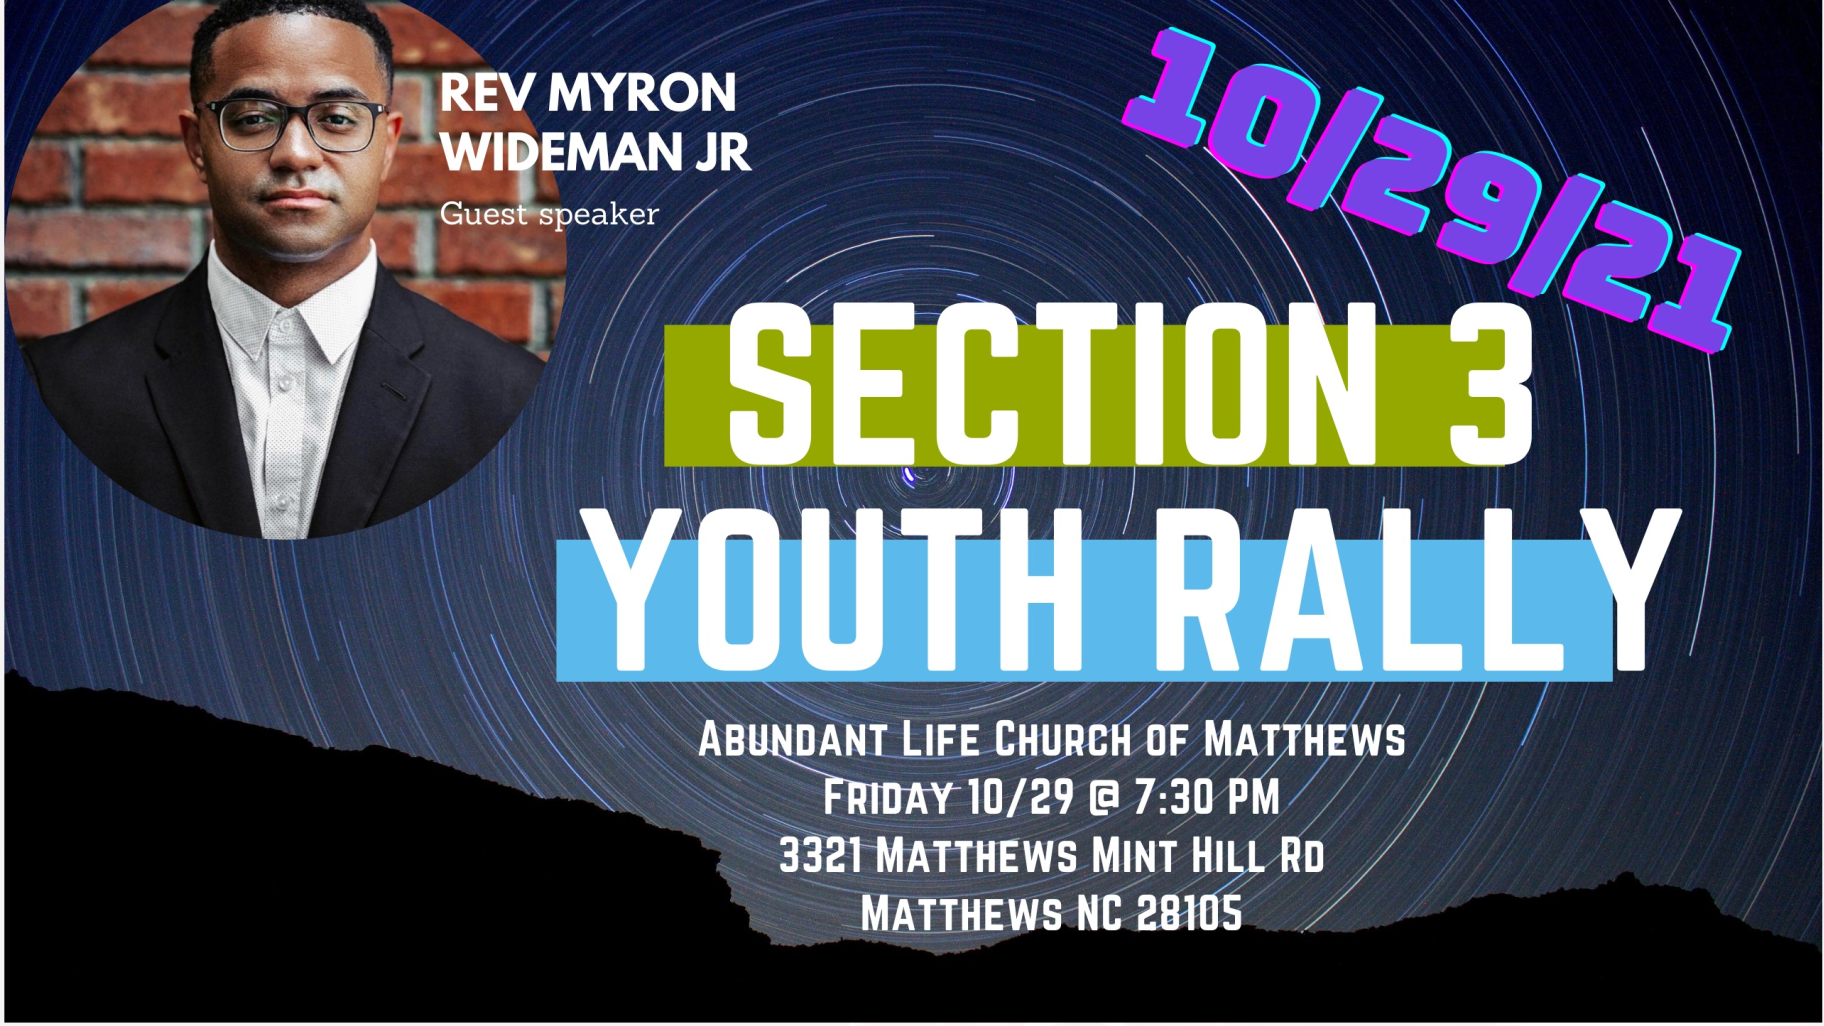 Section 3 Youth Rally